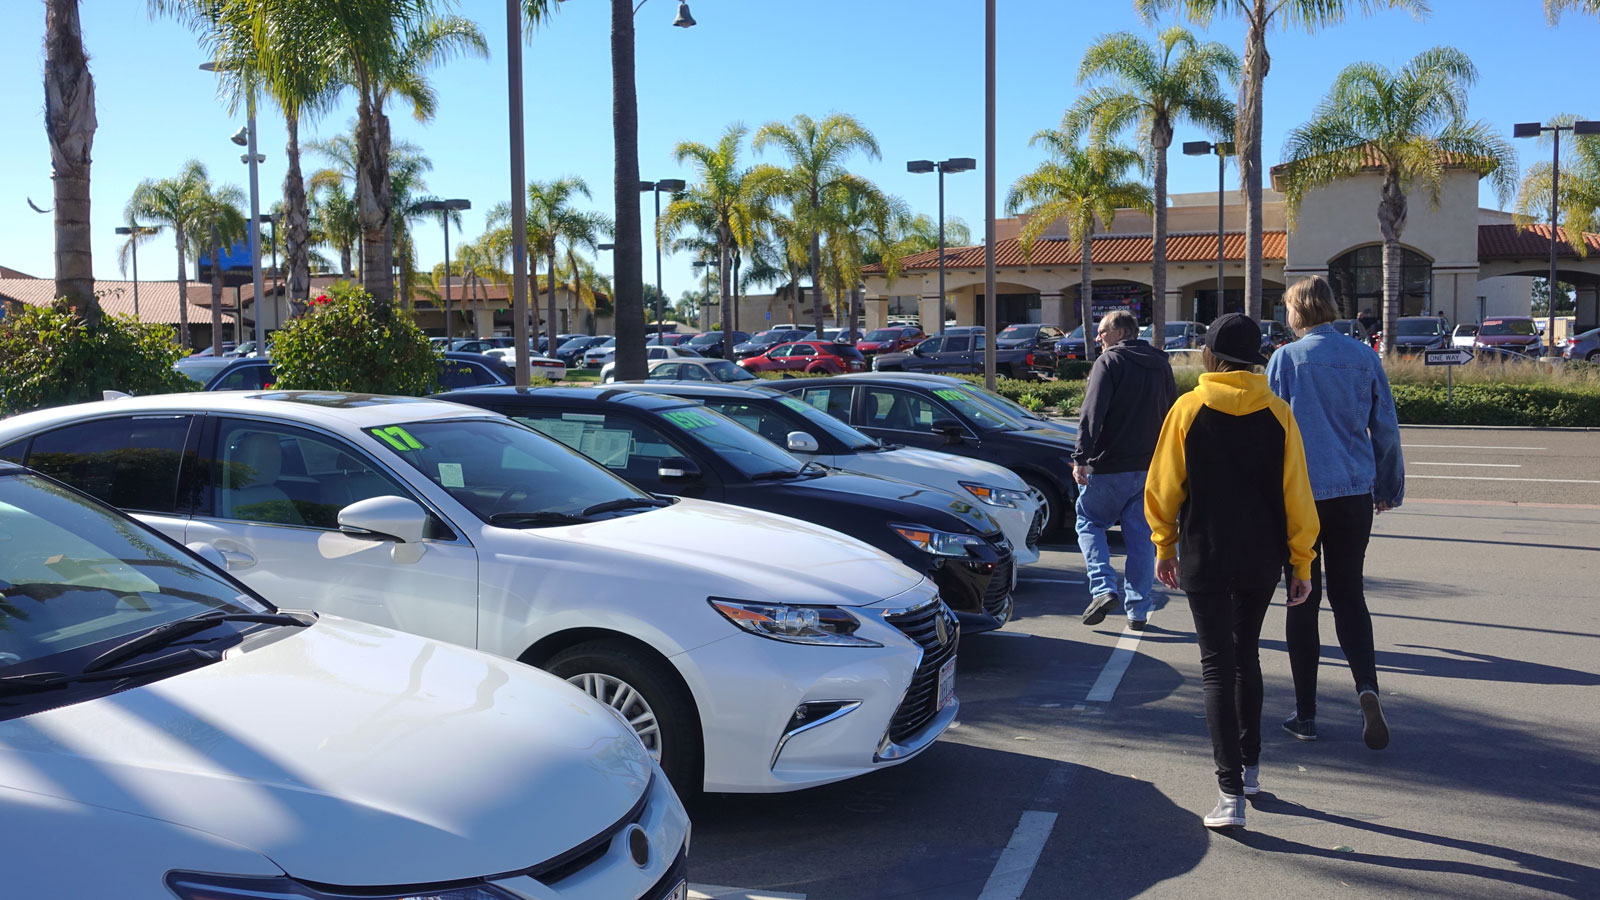 Used Cars >> Unsafe Used Cars For Sale U S Pirg